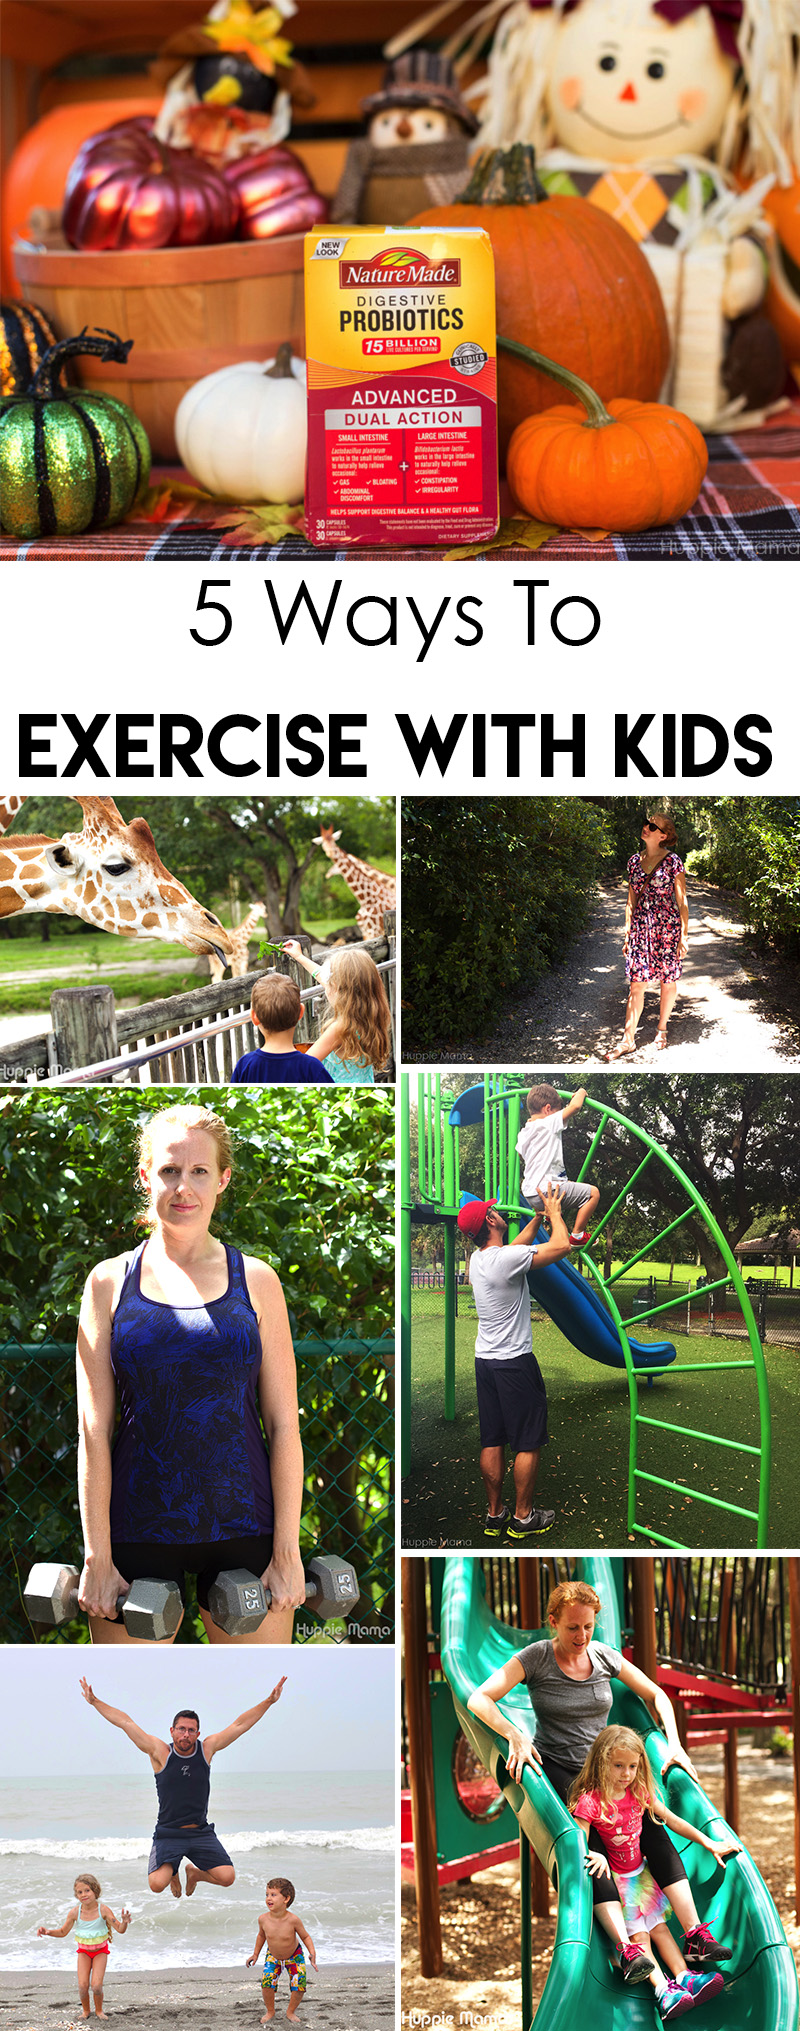 5-ways-to-exercise-with-kids